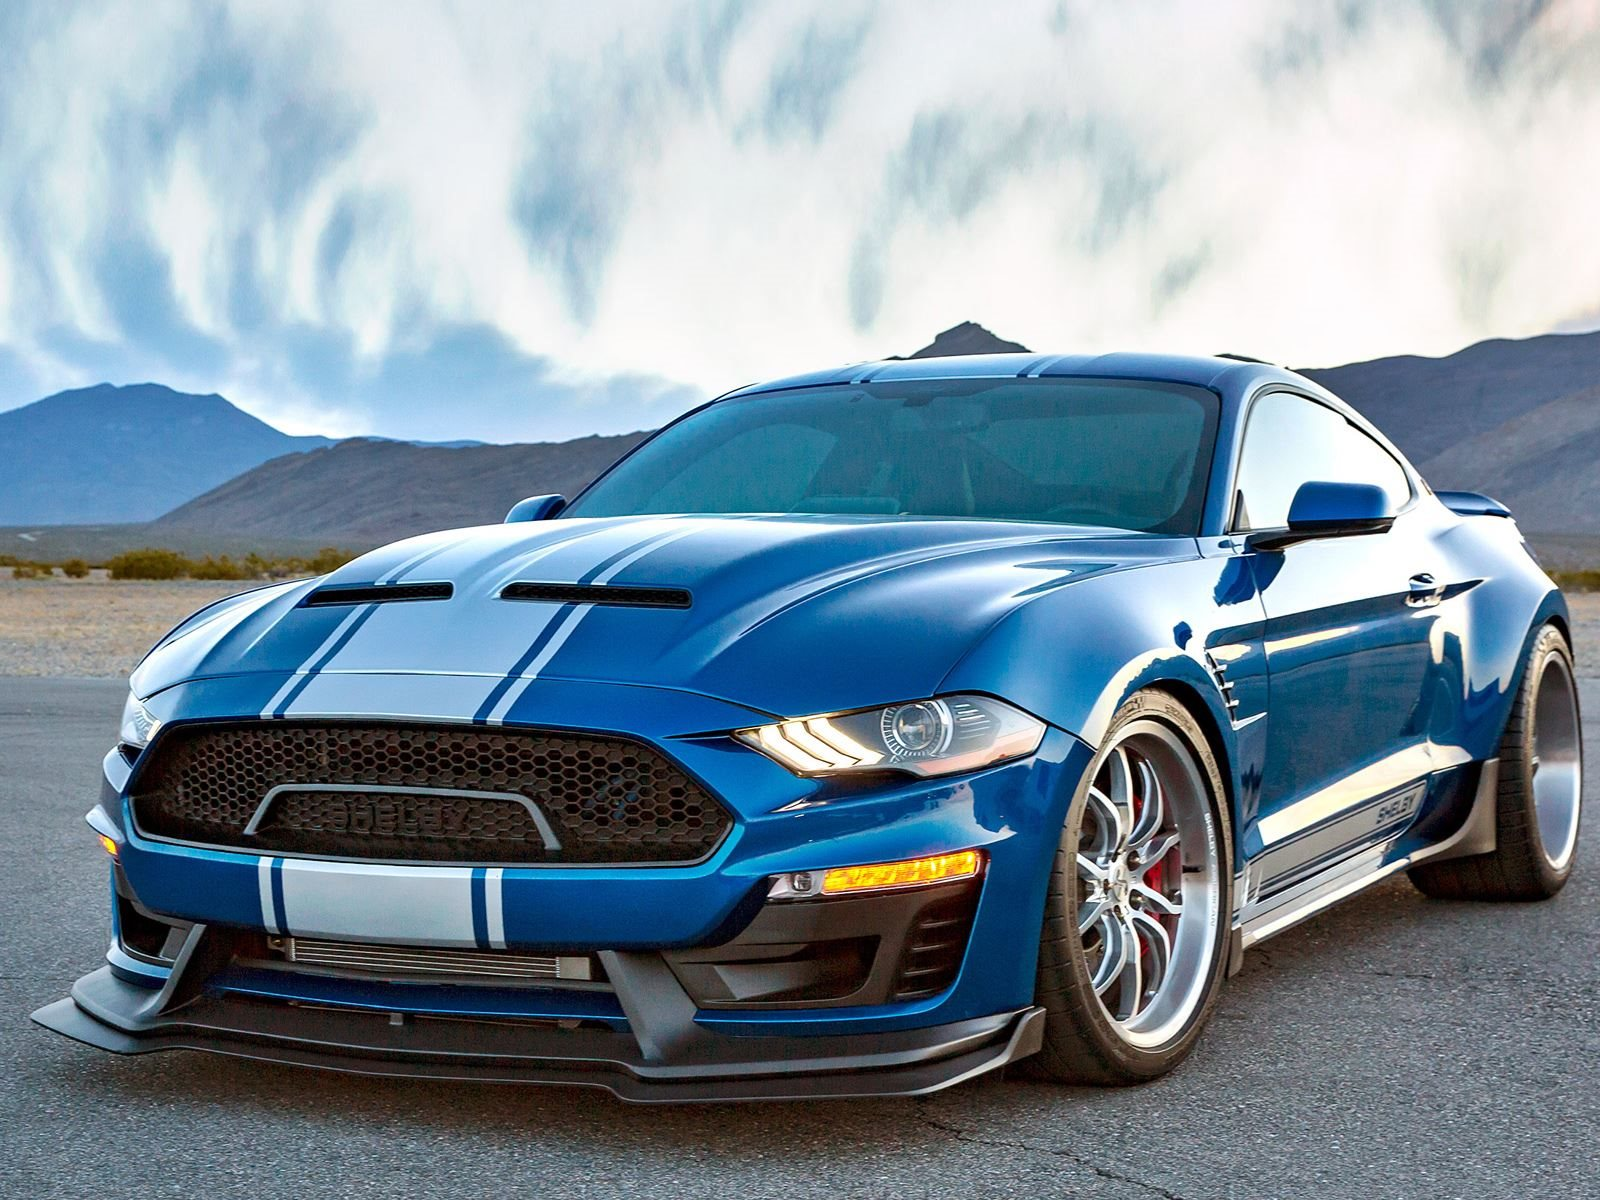 All New 2018 Shelby Mustang Super Snake Packs 800 HP CarBuzz